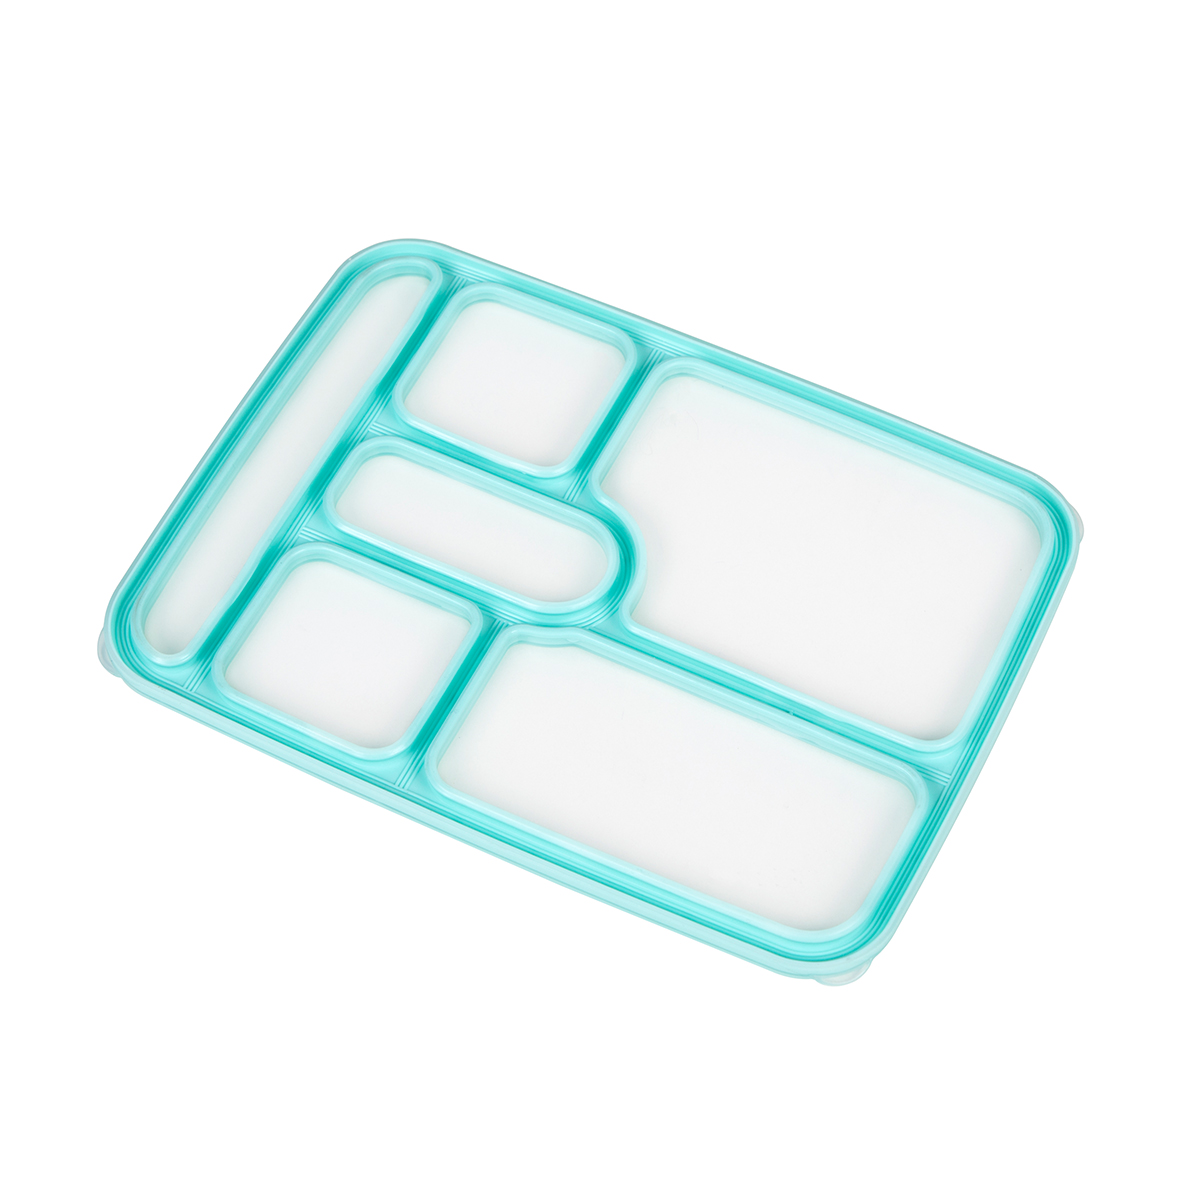 6 compartment lunch box set for kids